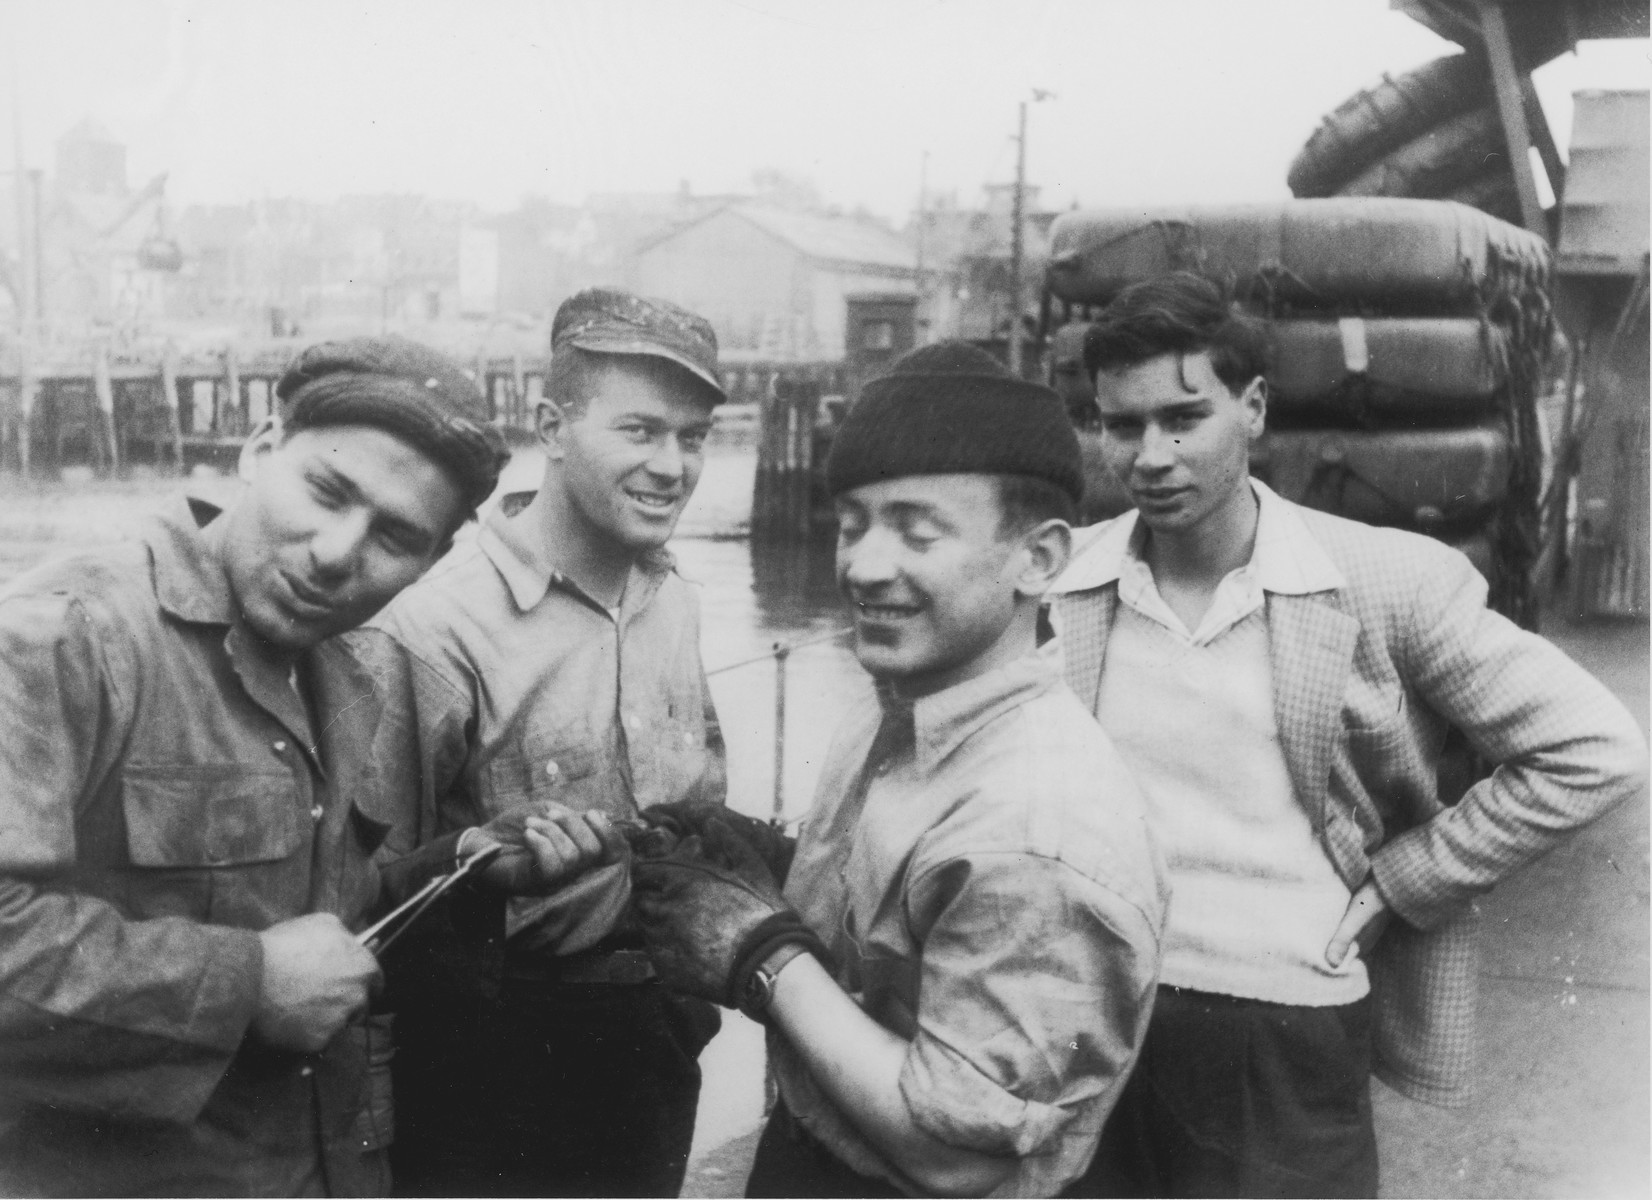 Four crew members of an illegal immigrant ship to Palestine [possibly the Haganah or the Josiah Wedgewood] pose at Brewer's Dry Dock, Staten Island on the day they set sail for Europe to pick up Jewish DPs.  Pictured from left to right are: the unidentified bosin, David Fendel, Hyman Schechtman and Nadav Halevy.